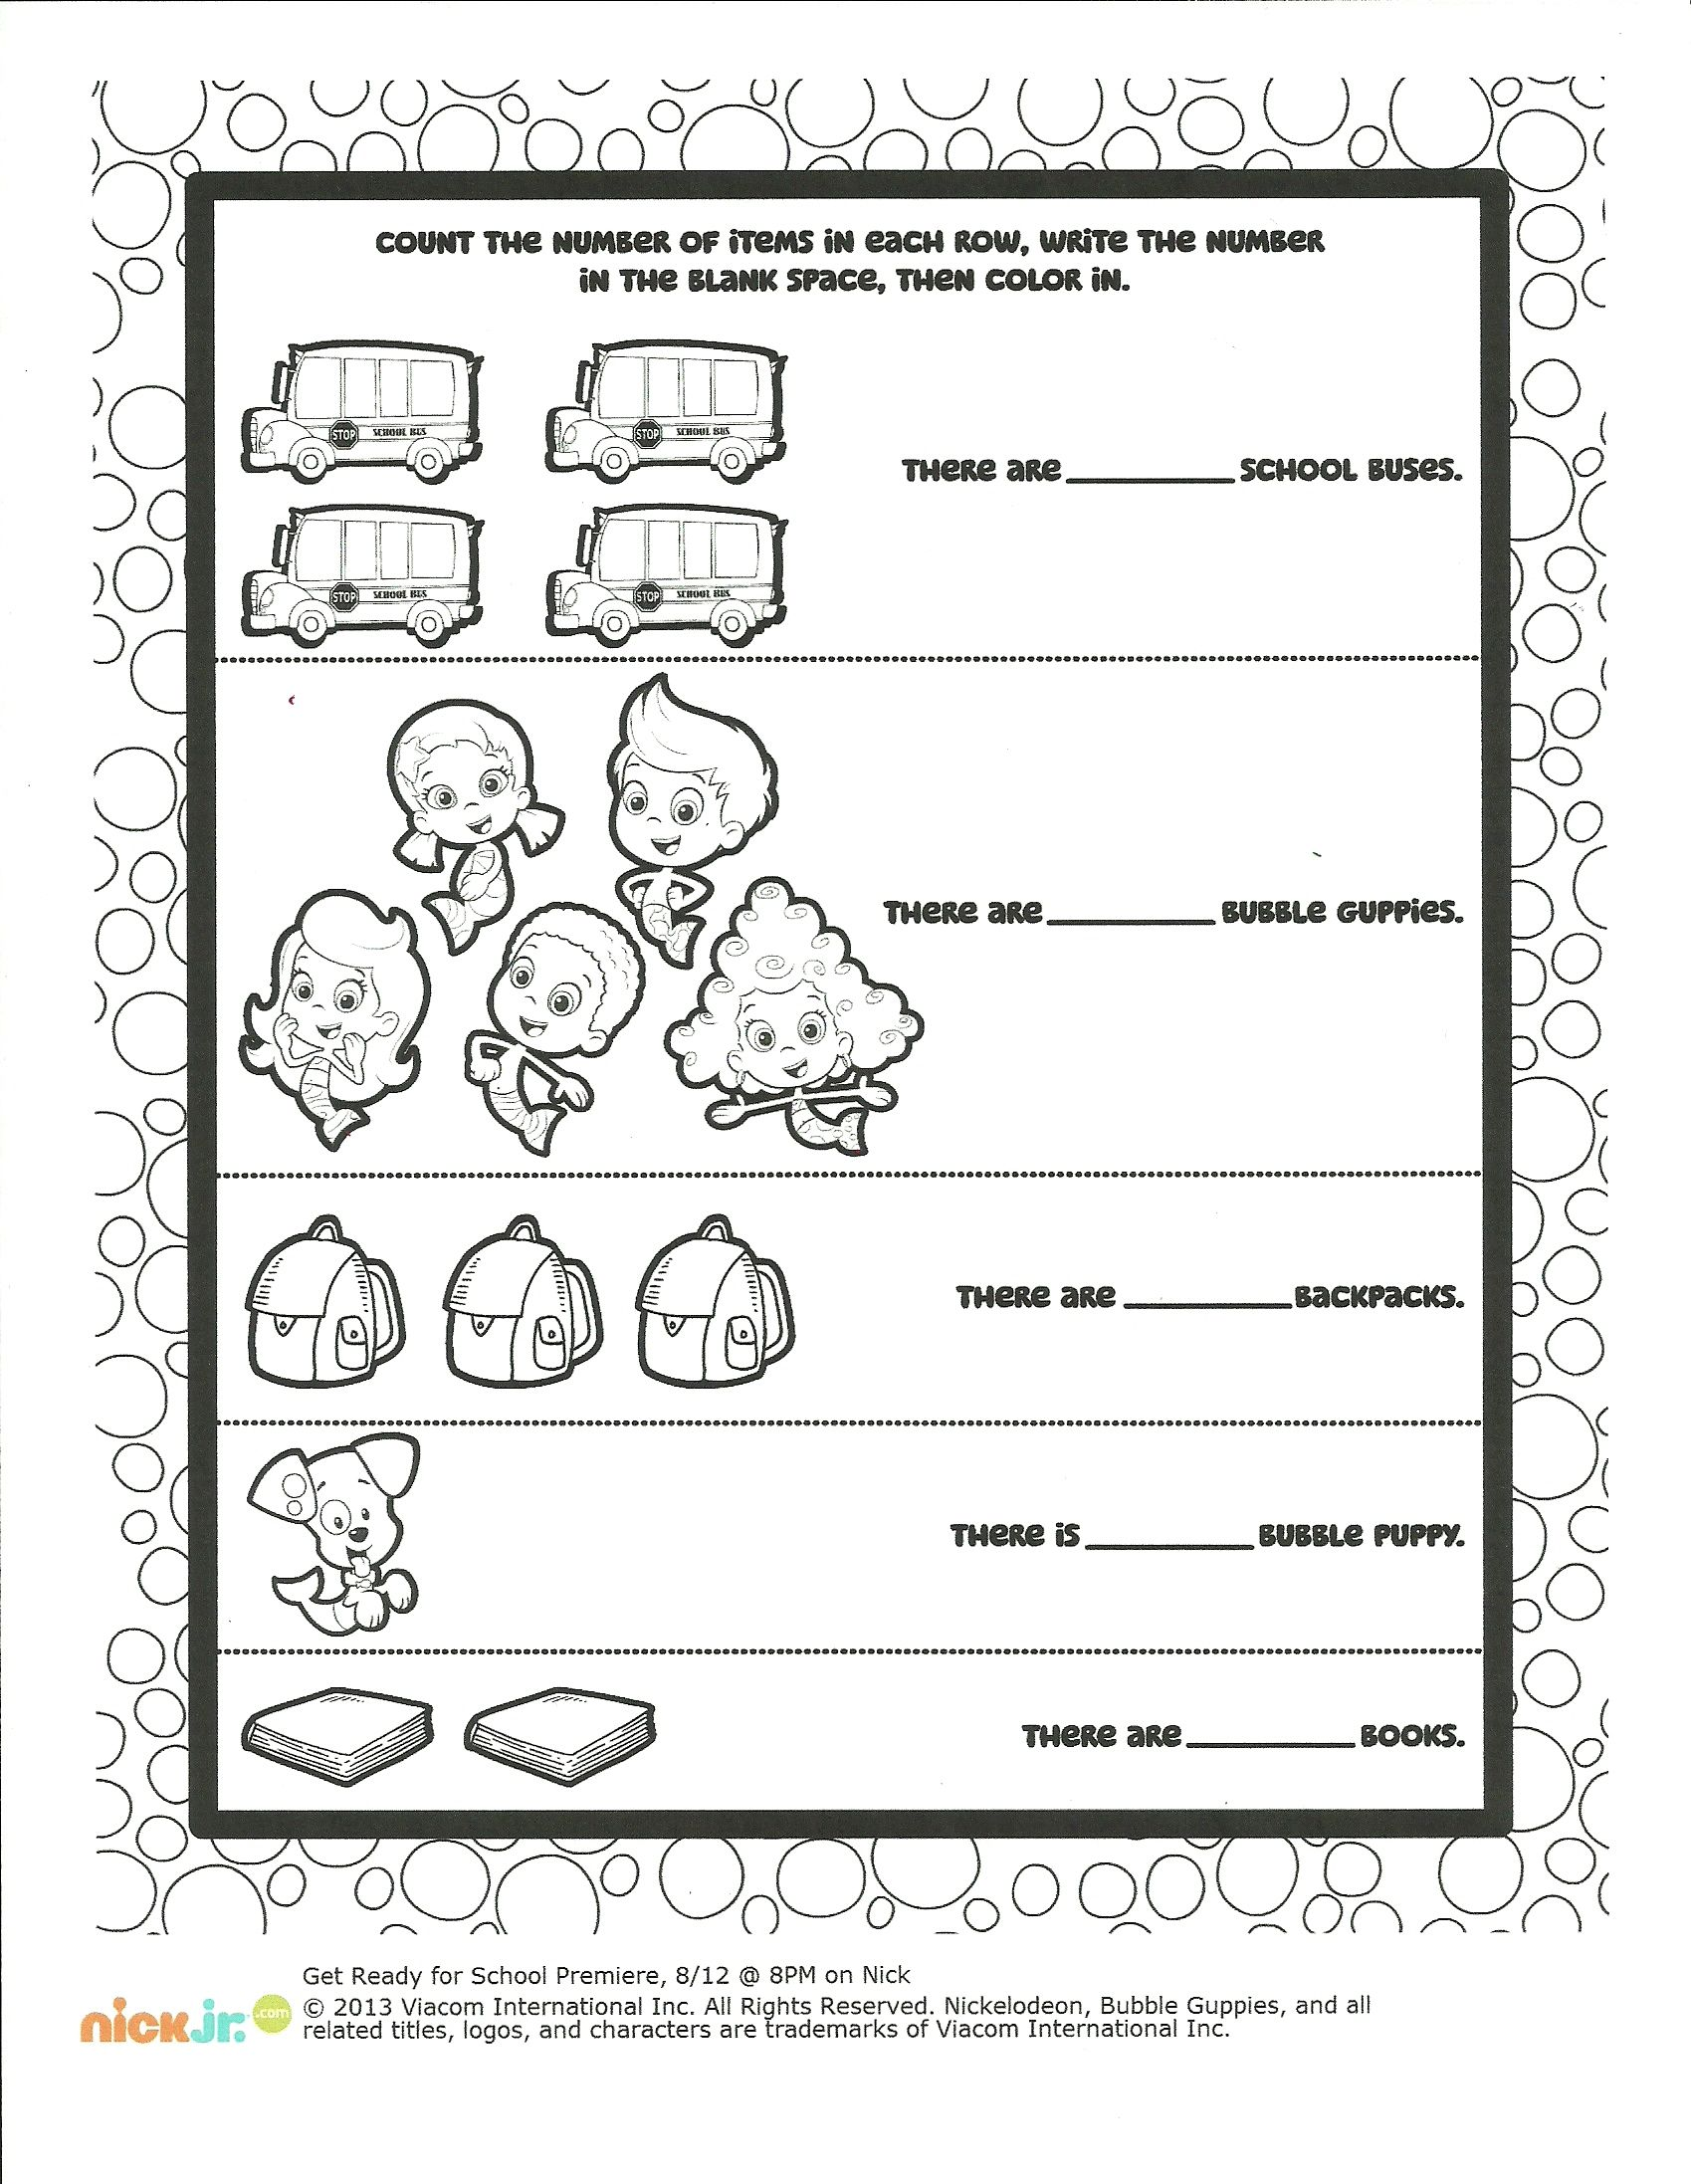 Bubble Guppies Color And Count Worksheet